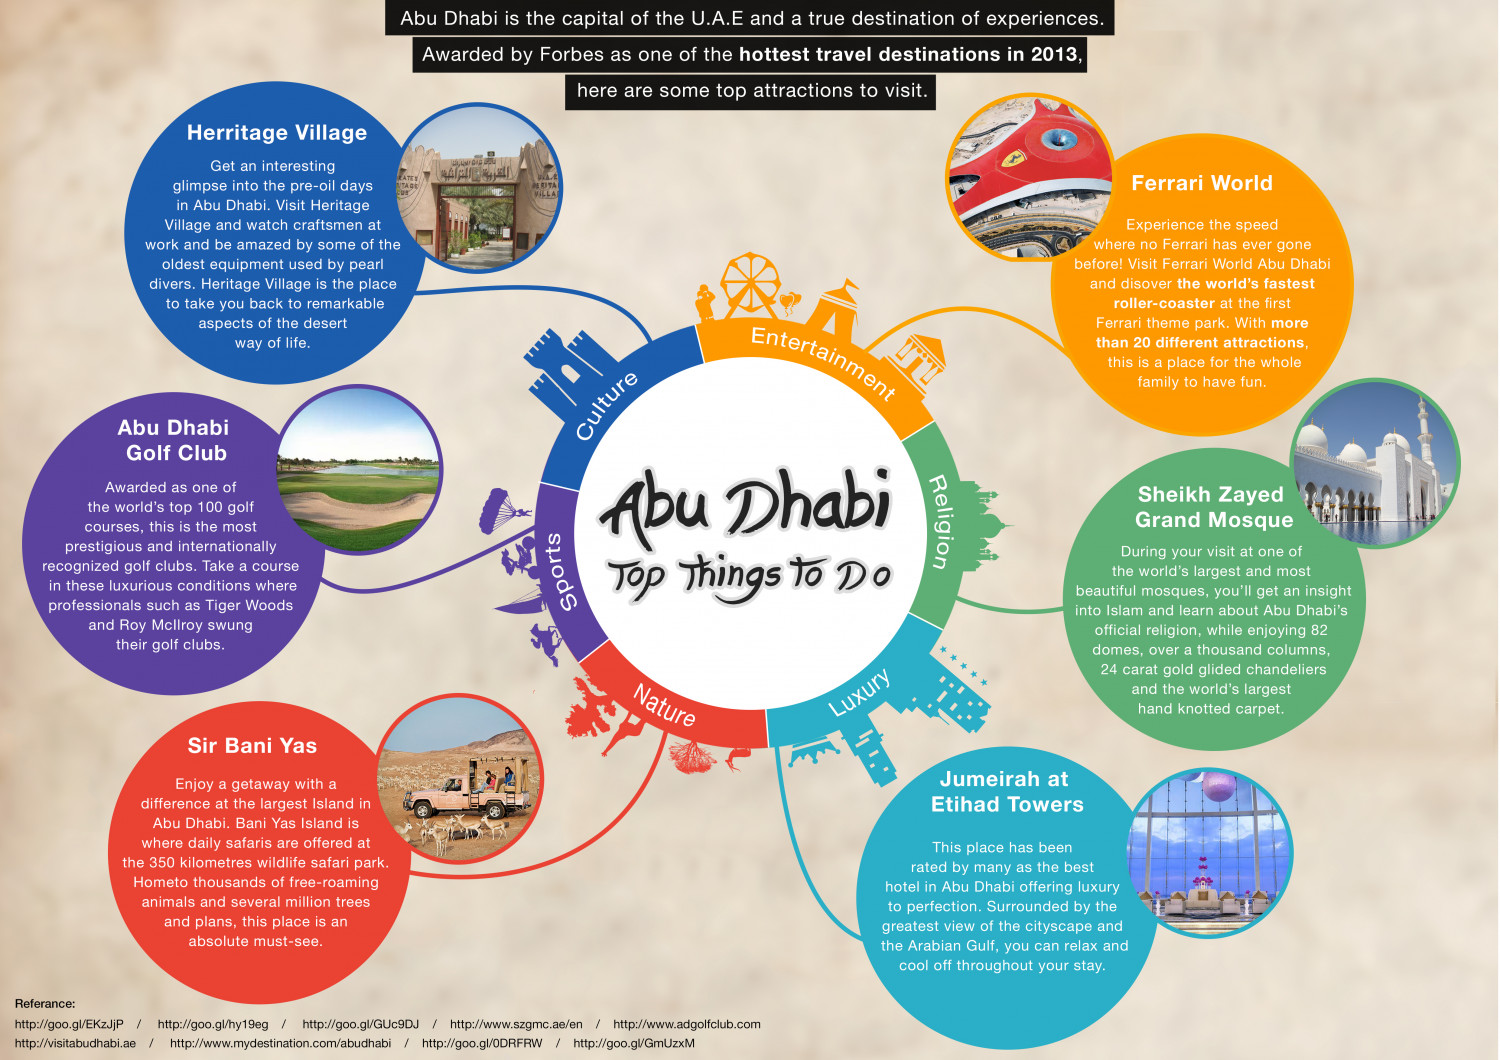 Abu Dhabi Top Things to do Infographic